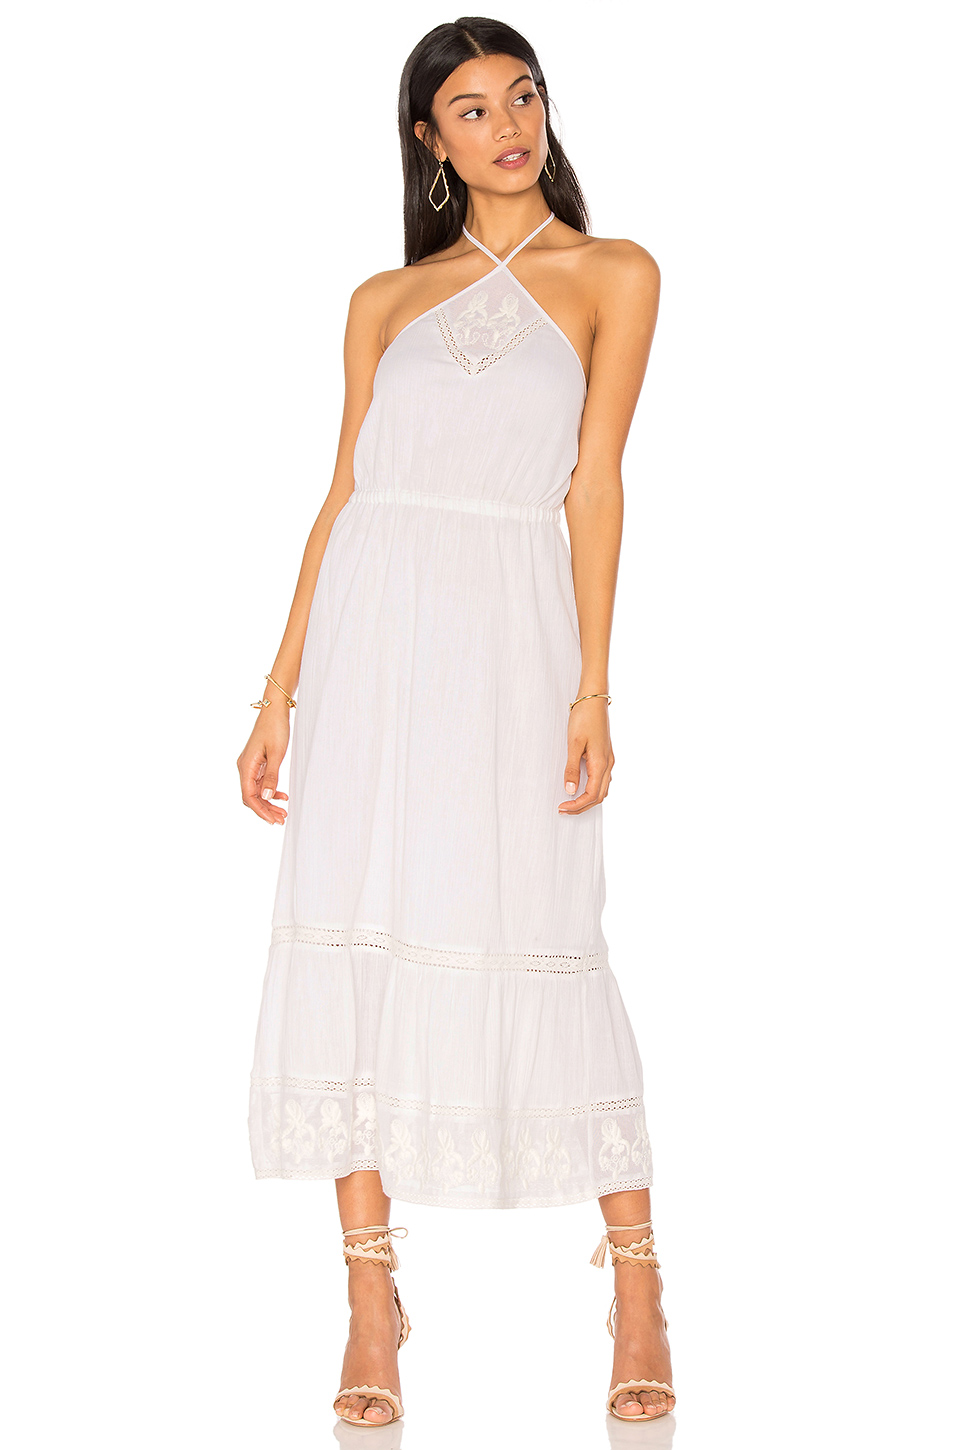 Cayo Blanco Halter Dress